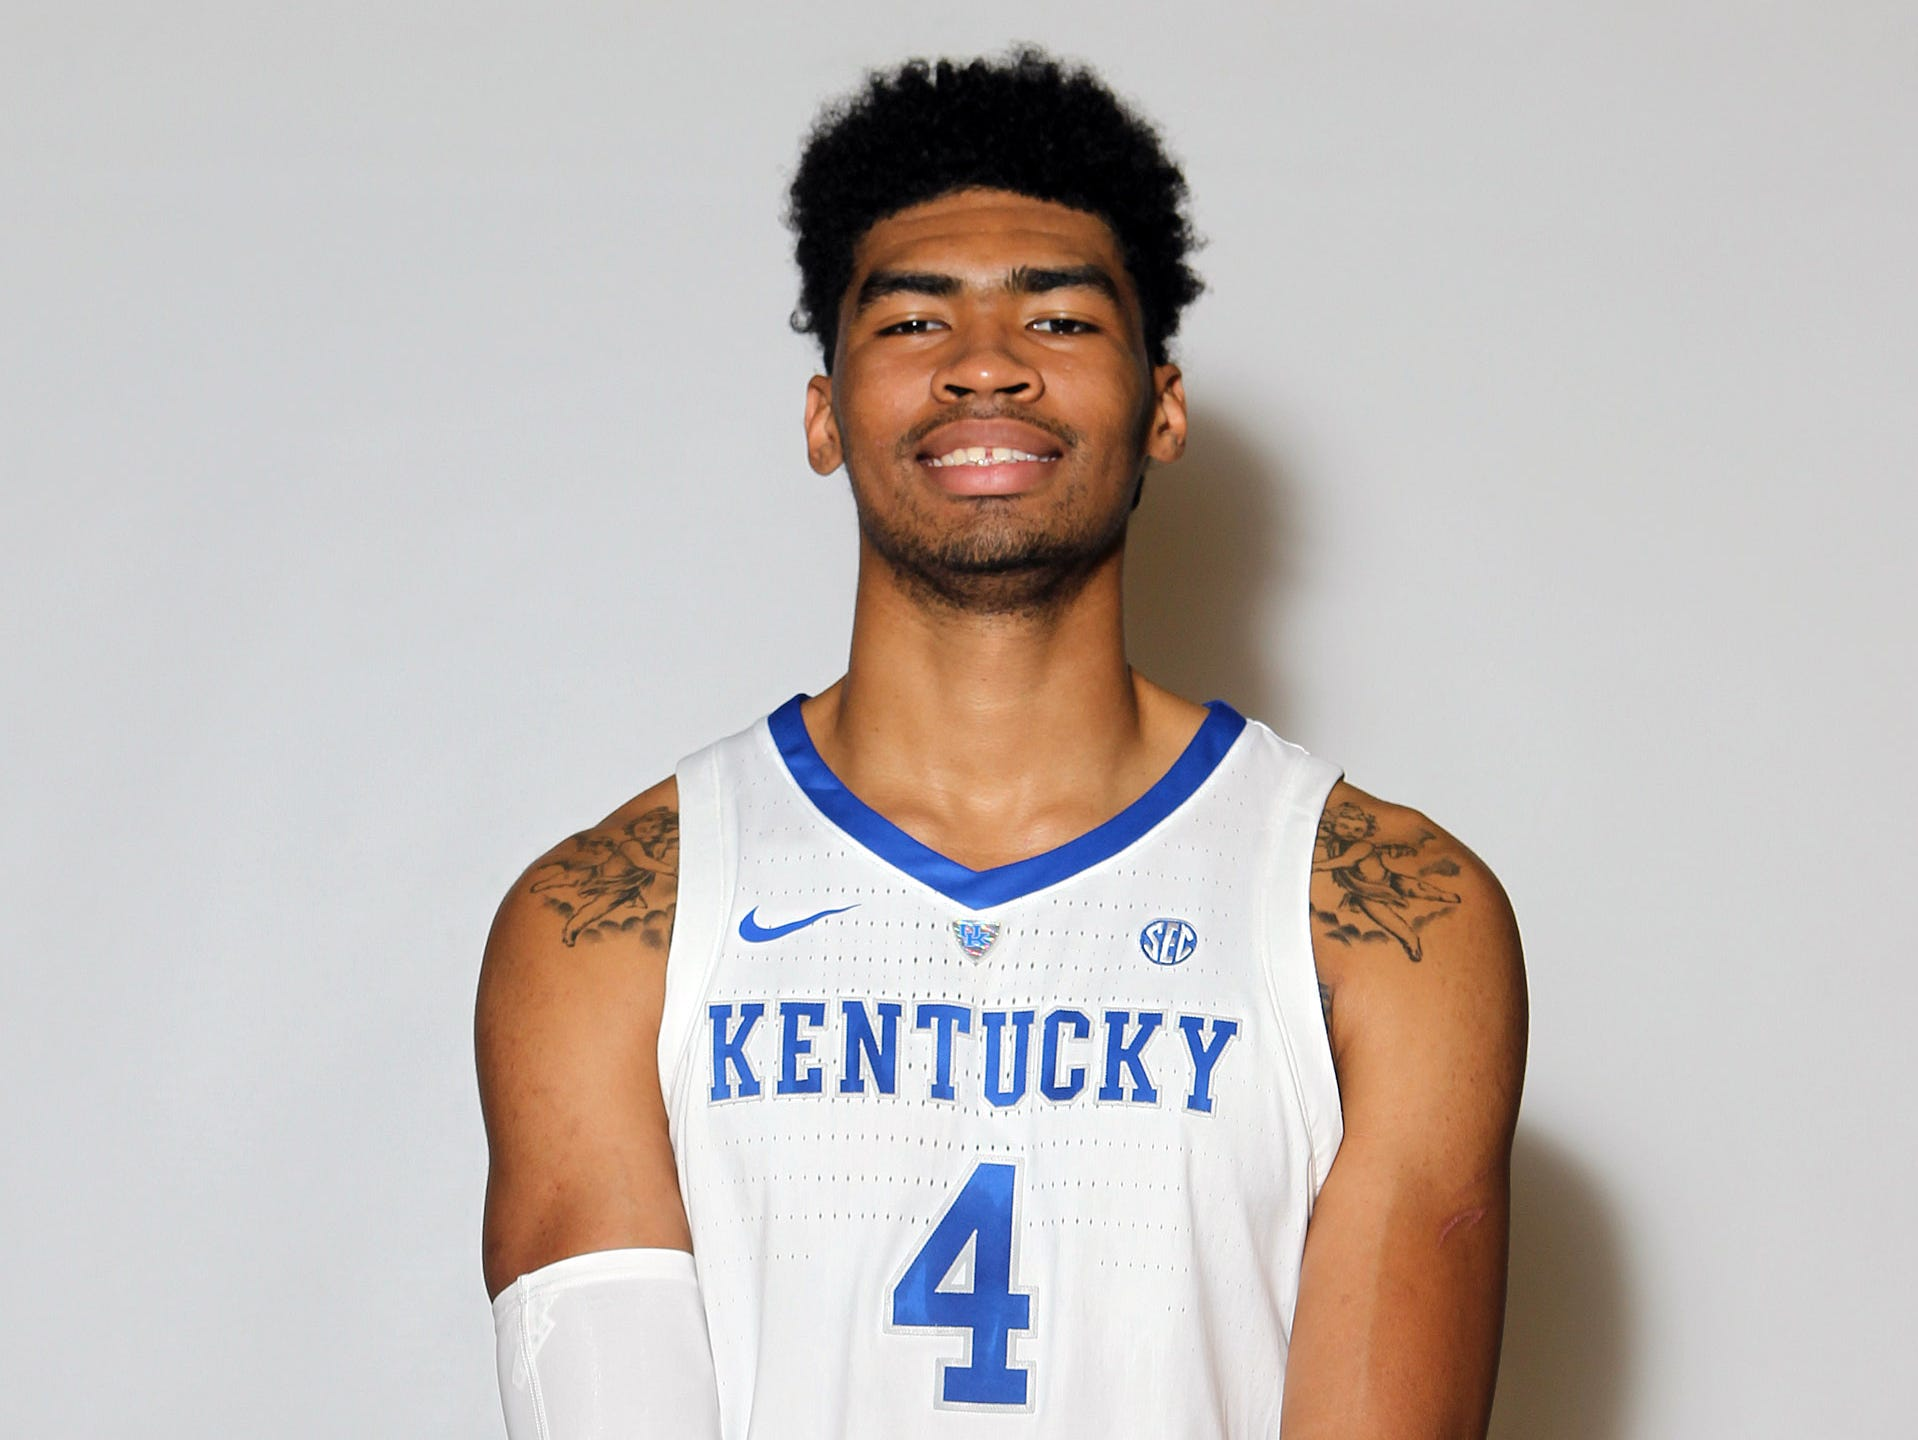 Kentucky's Nick Richards (4) poses during the teams picture day in Memorial Coliseum on campus. Sep. 20, 2018